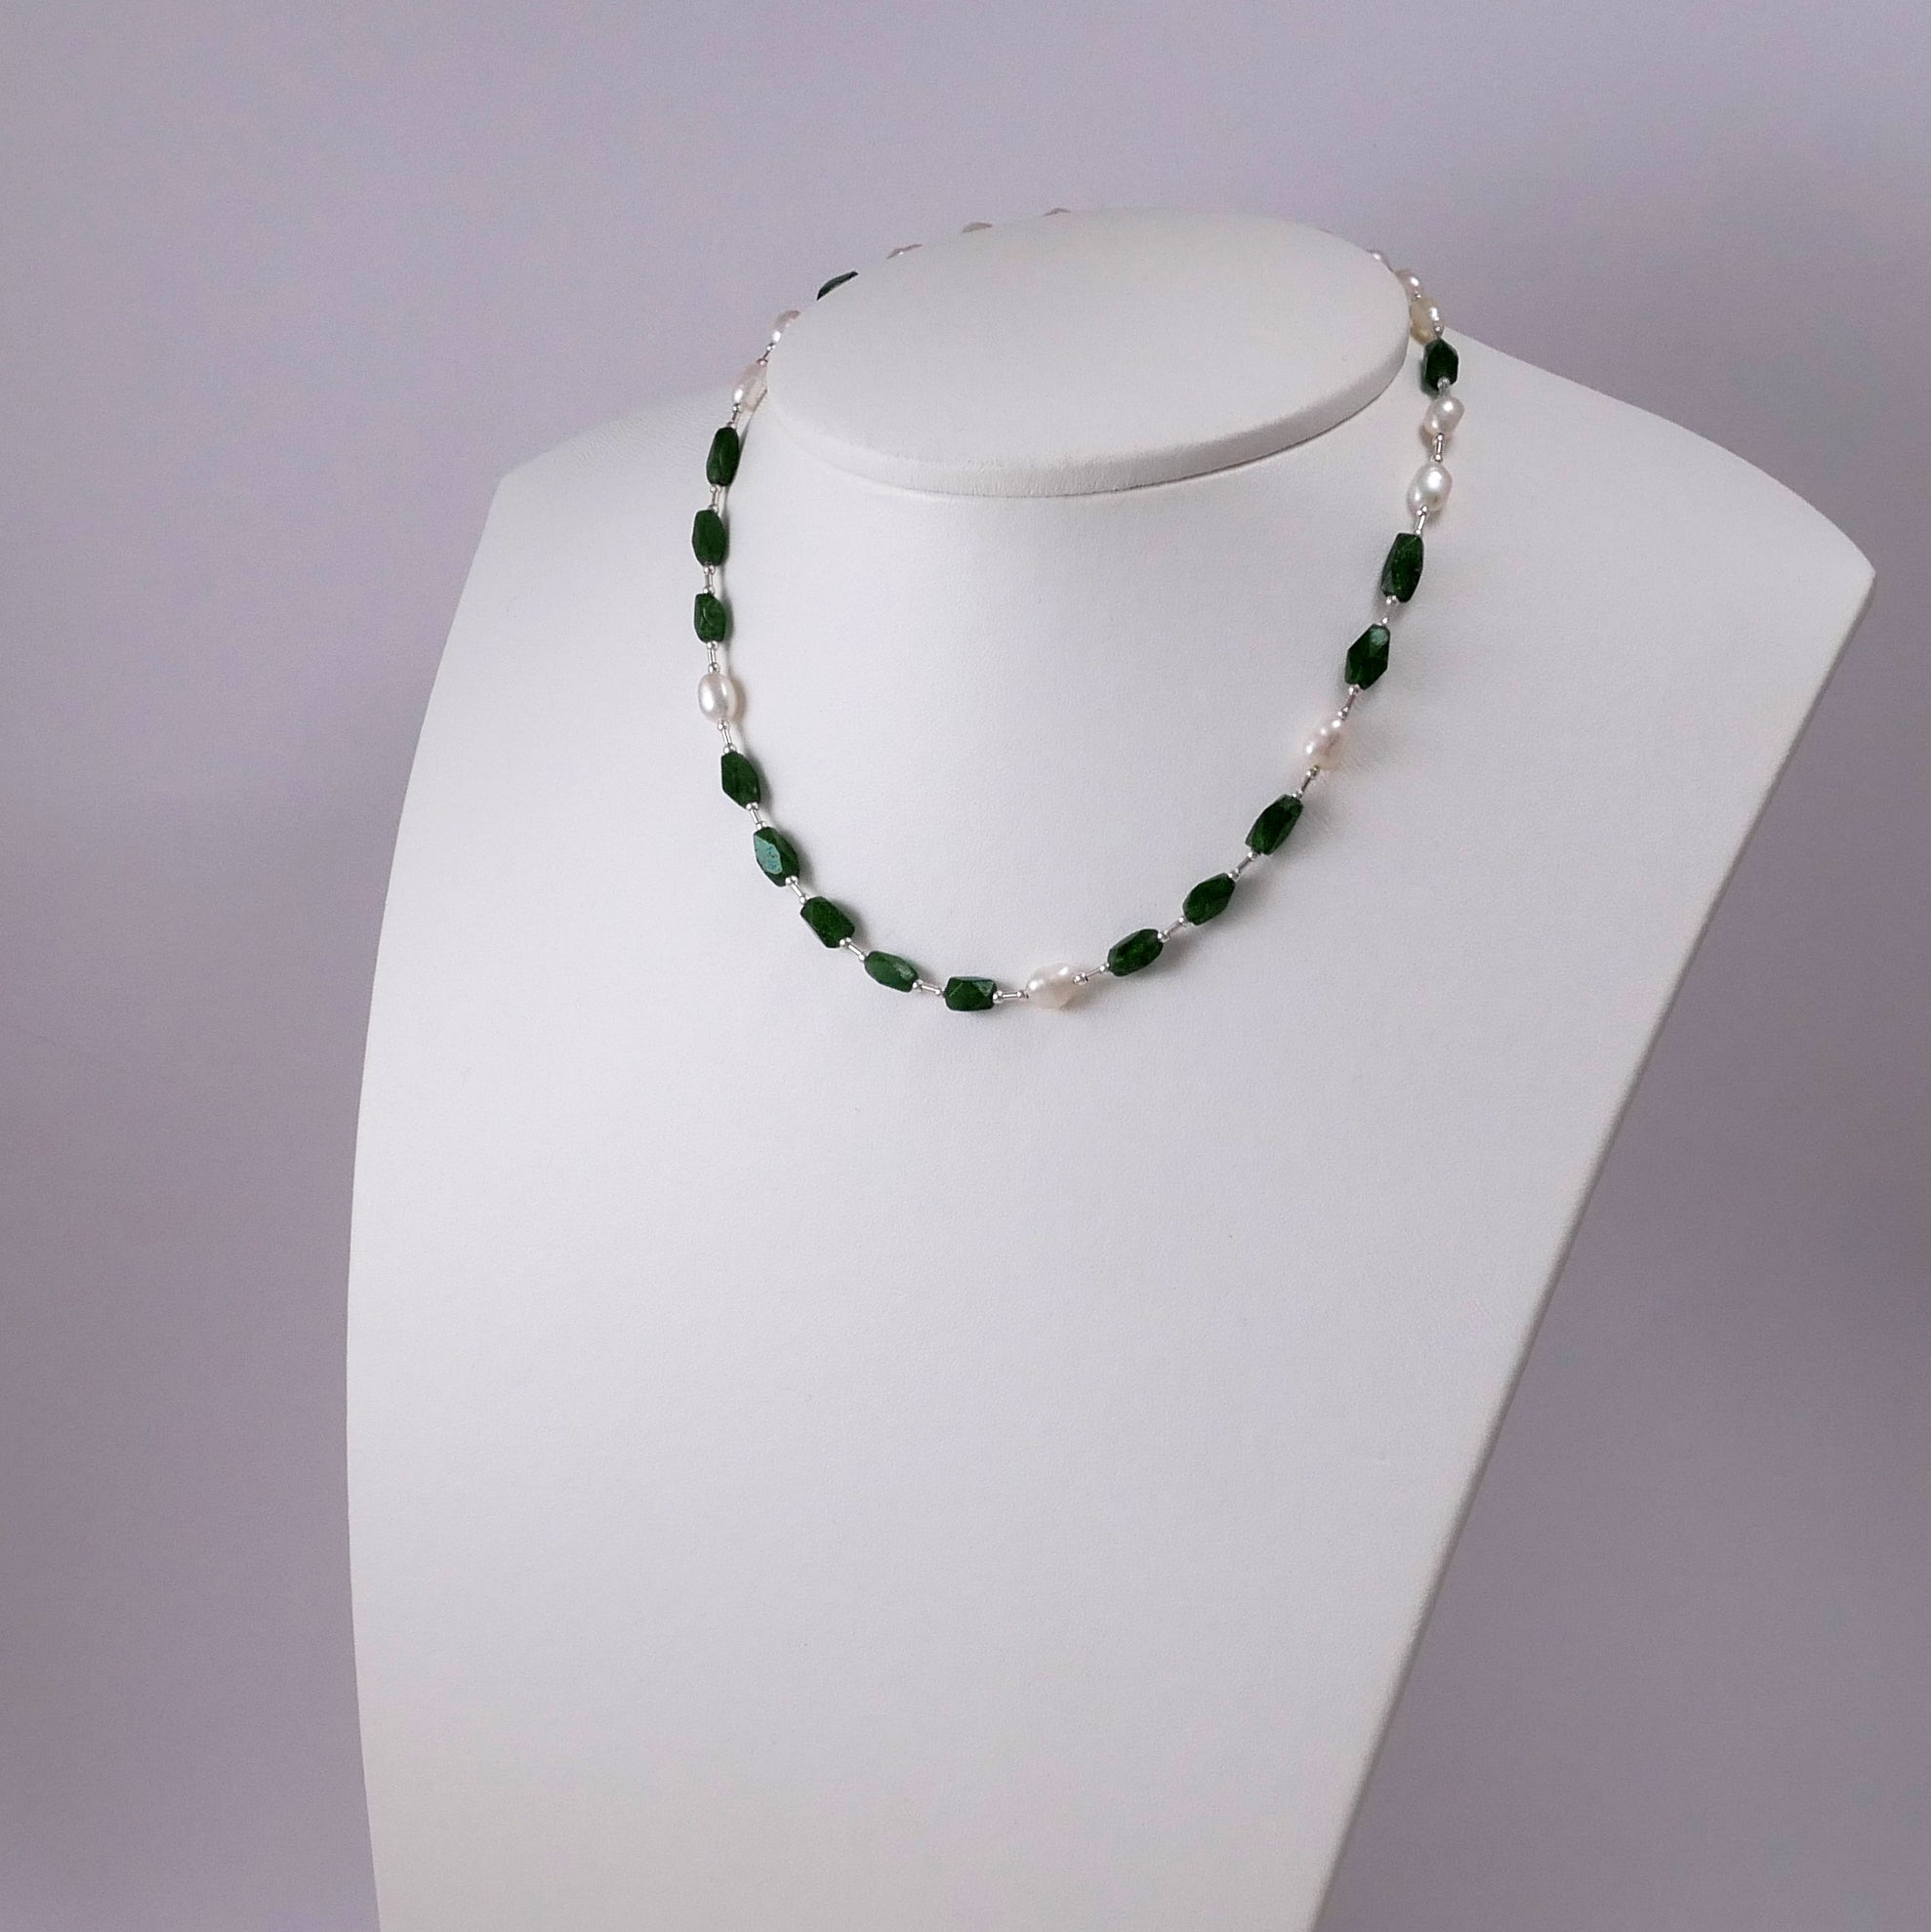 Pearls, Aventurine, and Sterling Silver Necklace - Katerina Roukouna